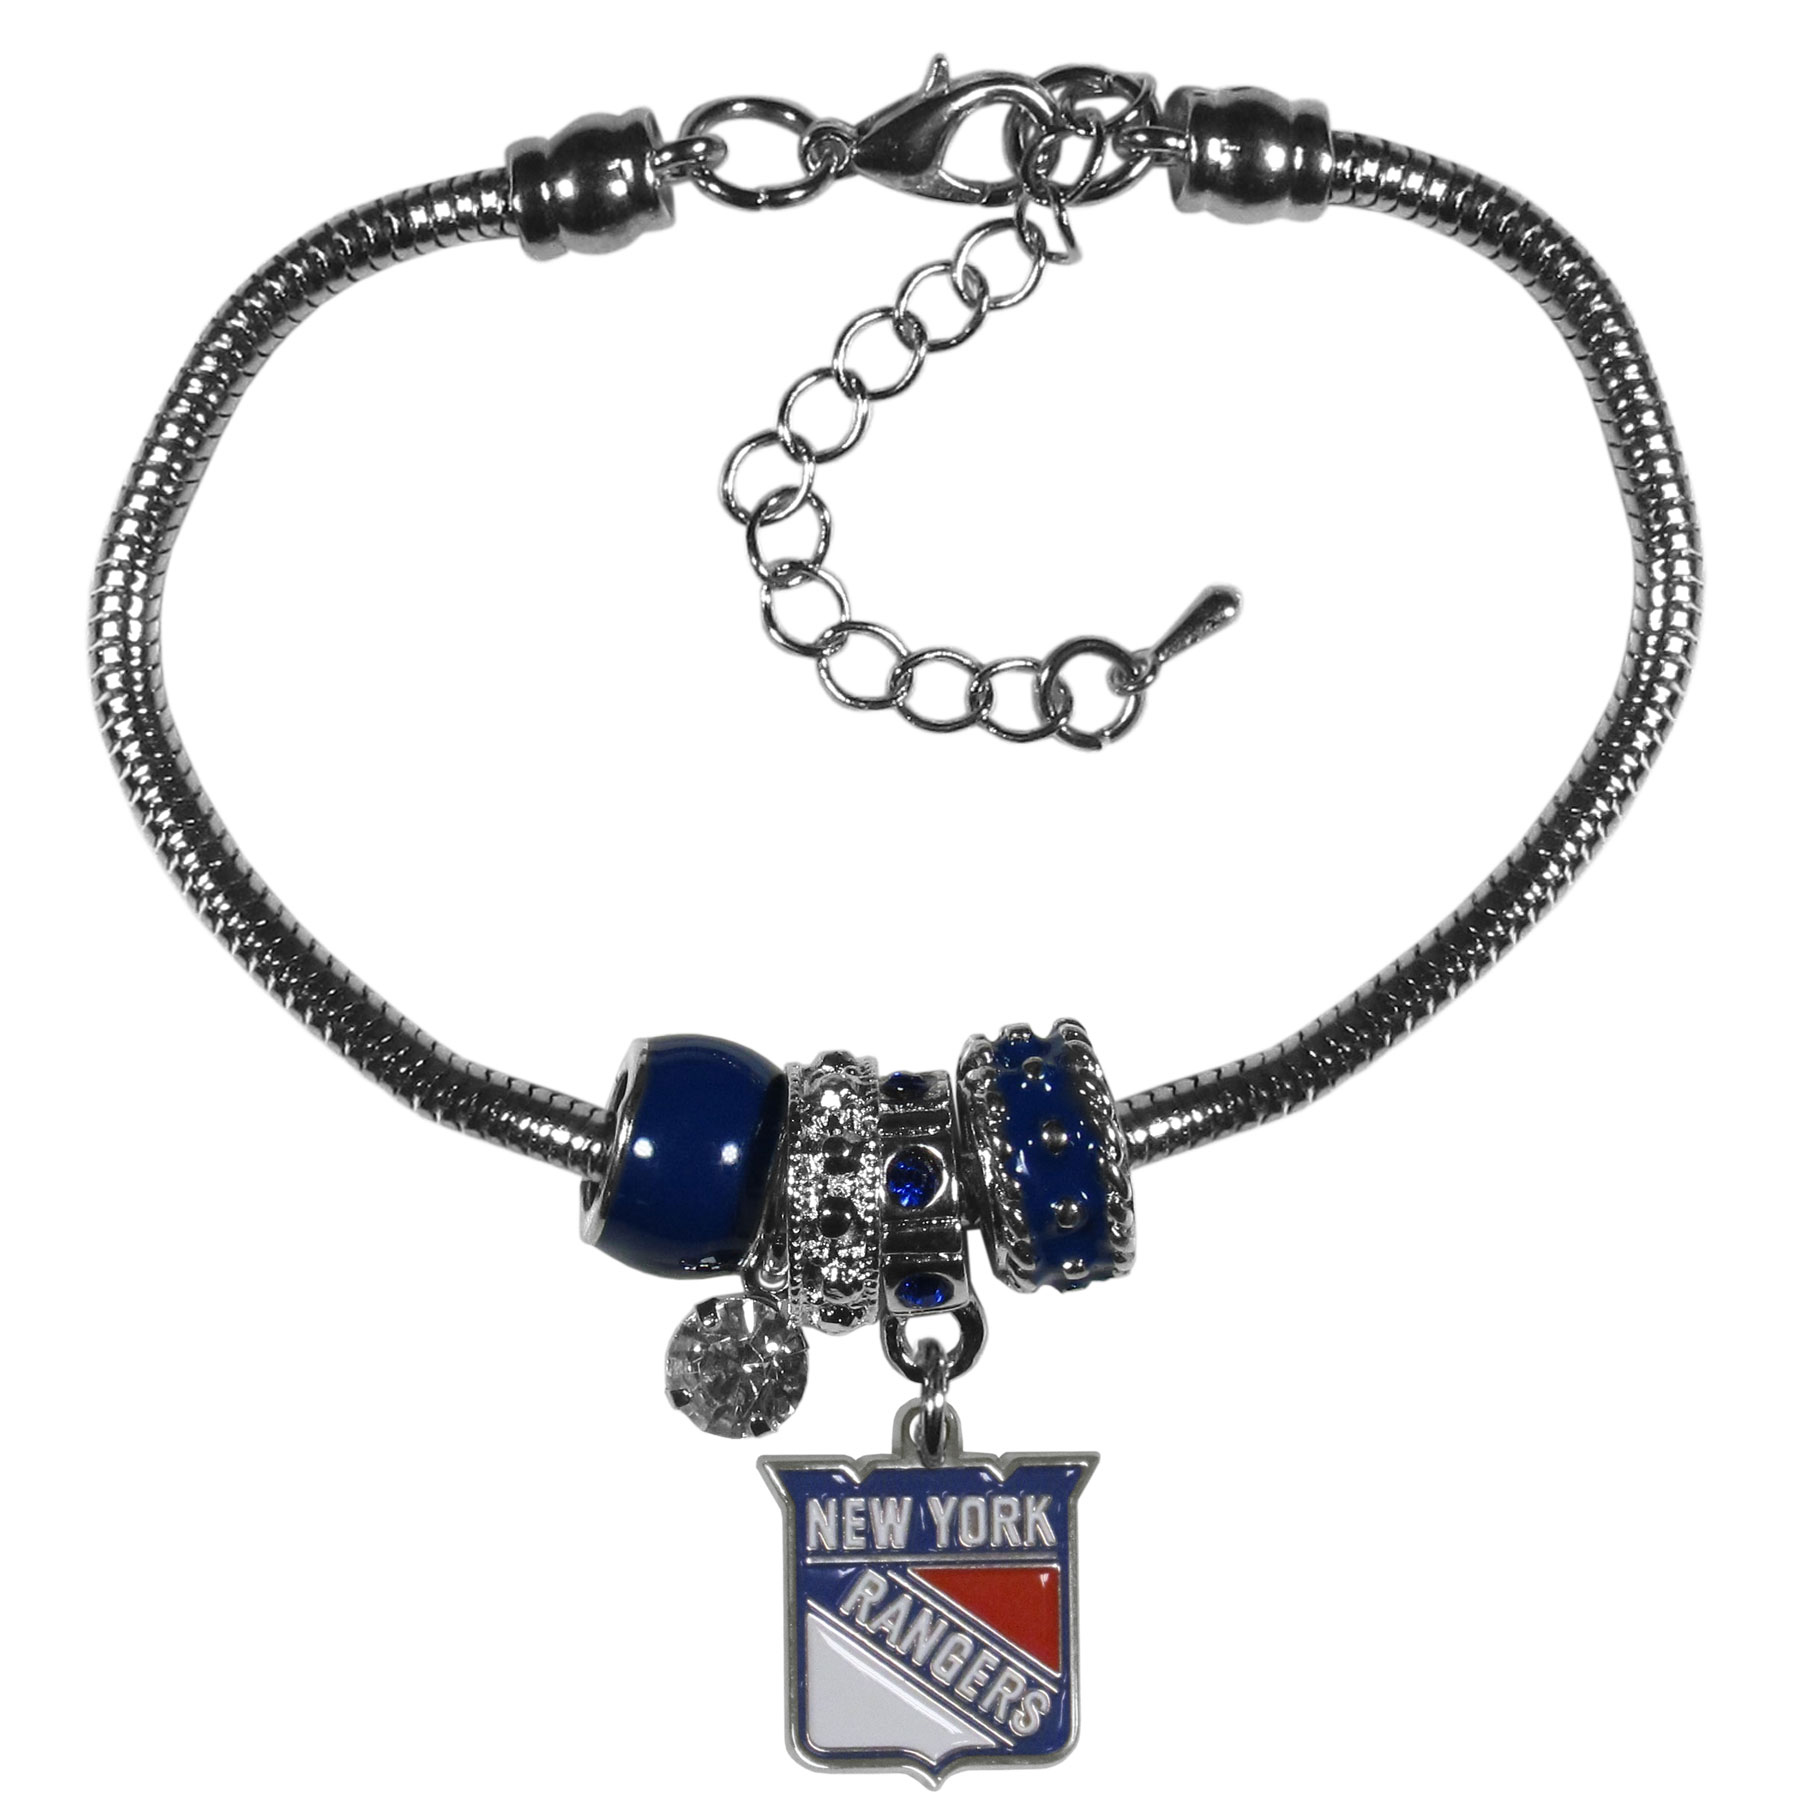 New York Rangers® Euro Bead Bracelet - We have combined the wildly popular Euro style beads with your favorite team to create our  New York Rangers® bead bracelet. The 7.5 inch snake chain with 2 inch extender features 4 Euro beads with enameled team colors and rhinestone accents with a high polish, nickel free charm and rhinestone charm. Perfect way to show off your team pride.